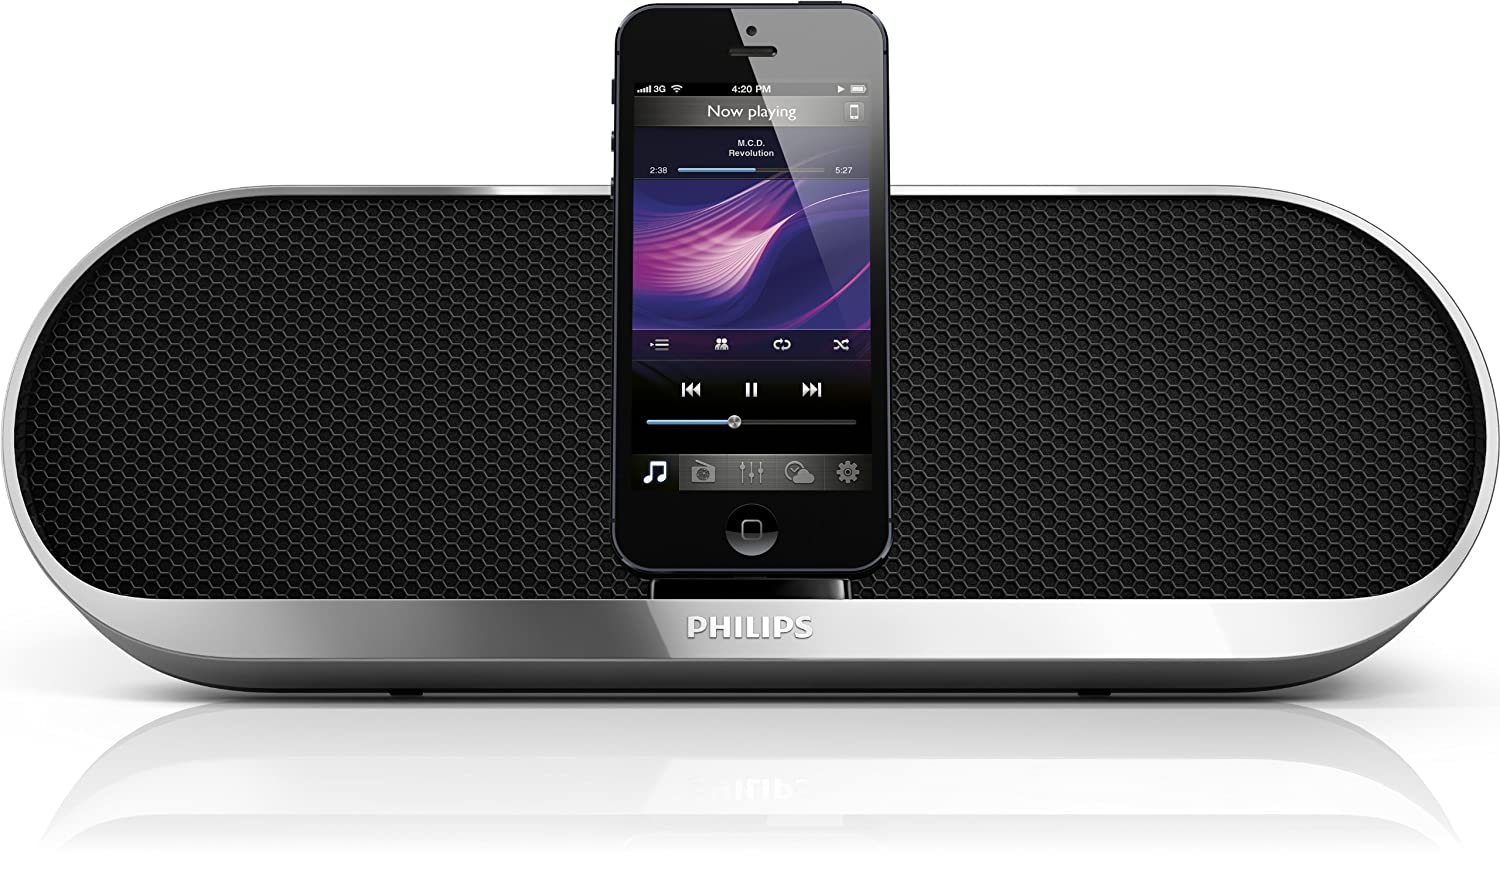 Philips DS7580 Speaker Dock for iPhone 5 $79.99